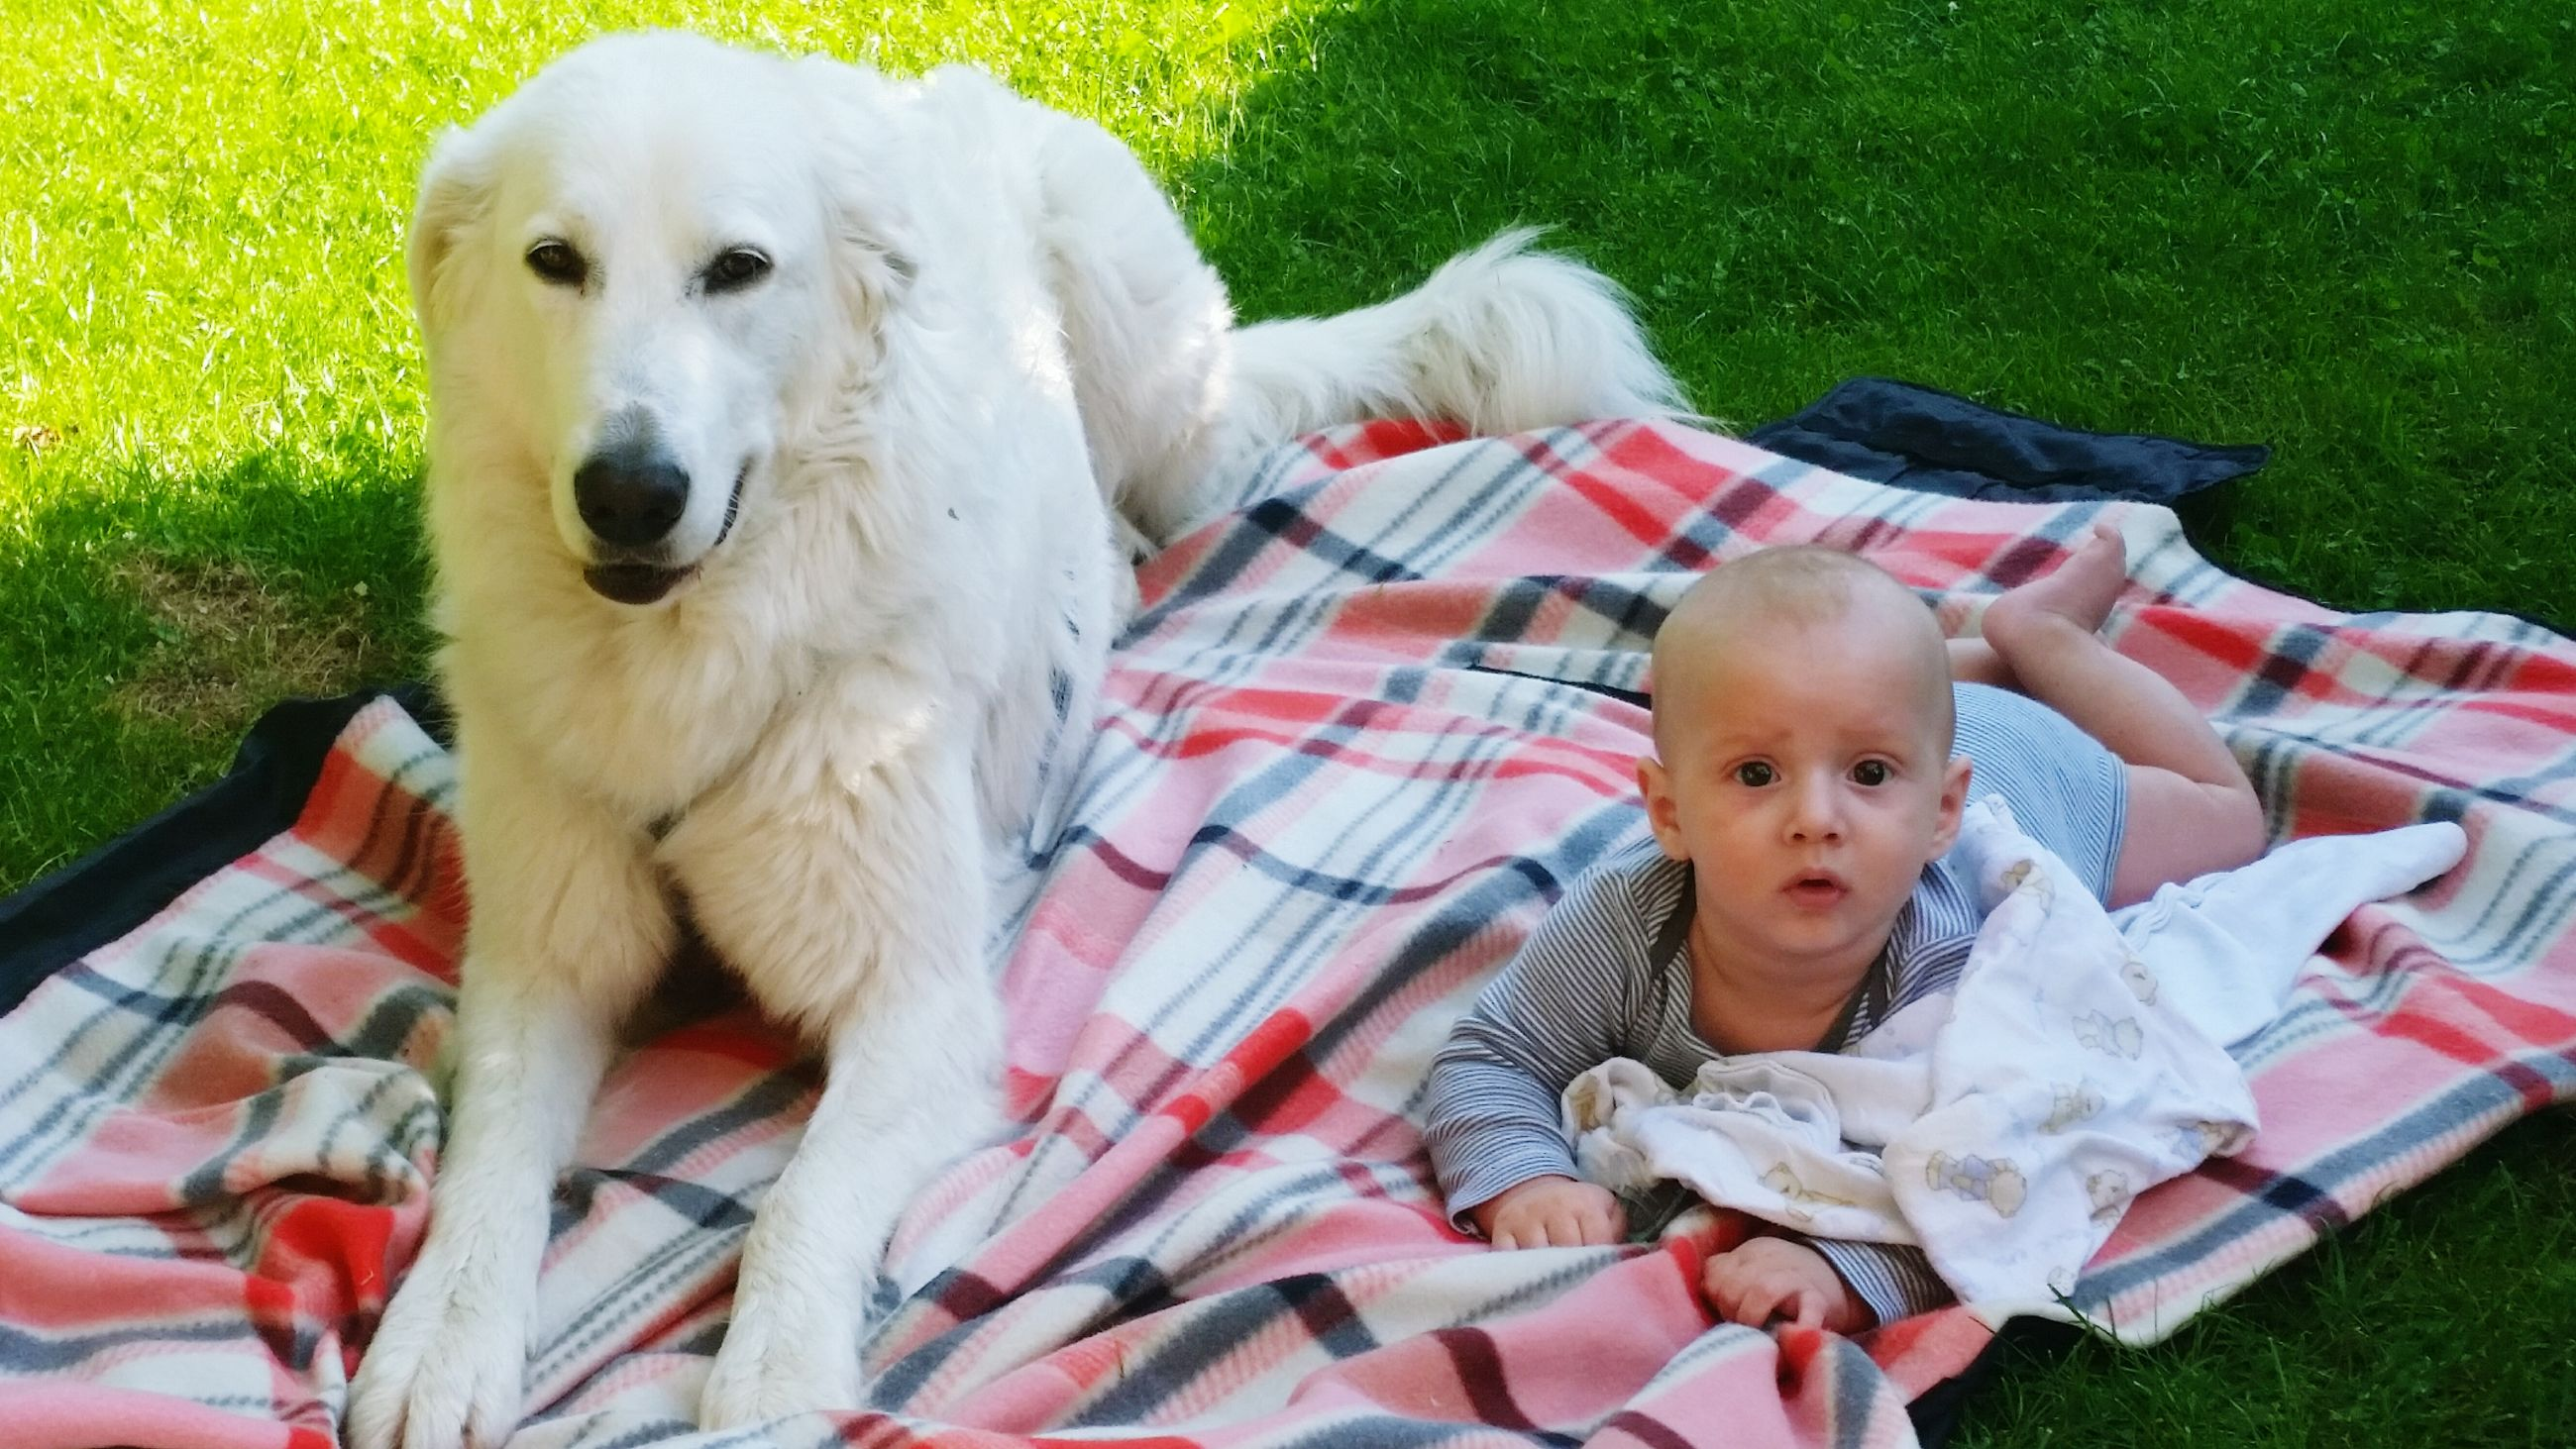 childhood, grass, cute, innocence, elementary age, animal themes, dog, girls, boys, high angle view, looking at camera, domestic animals, pets, person, field, toddler, one animal, playful, relaxation